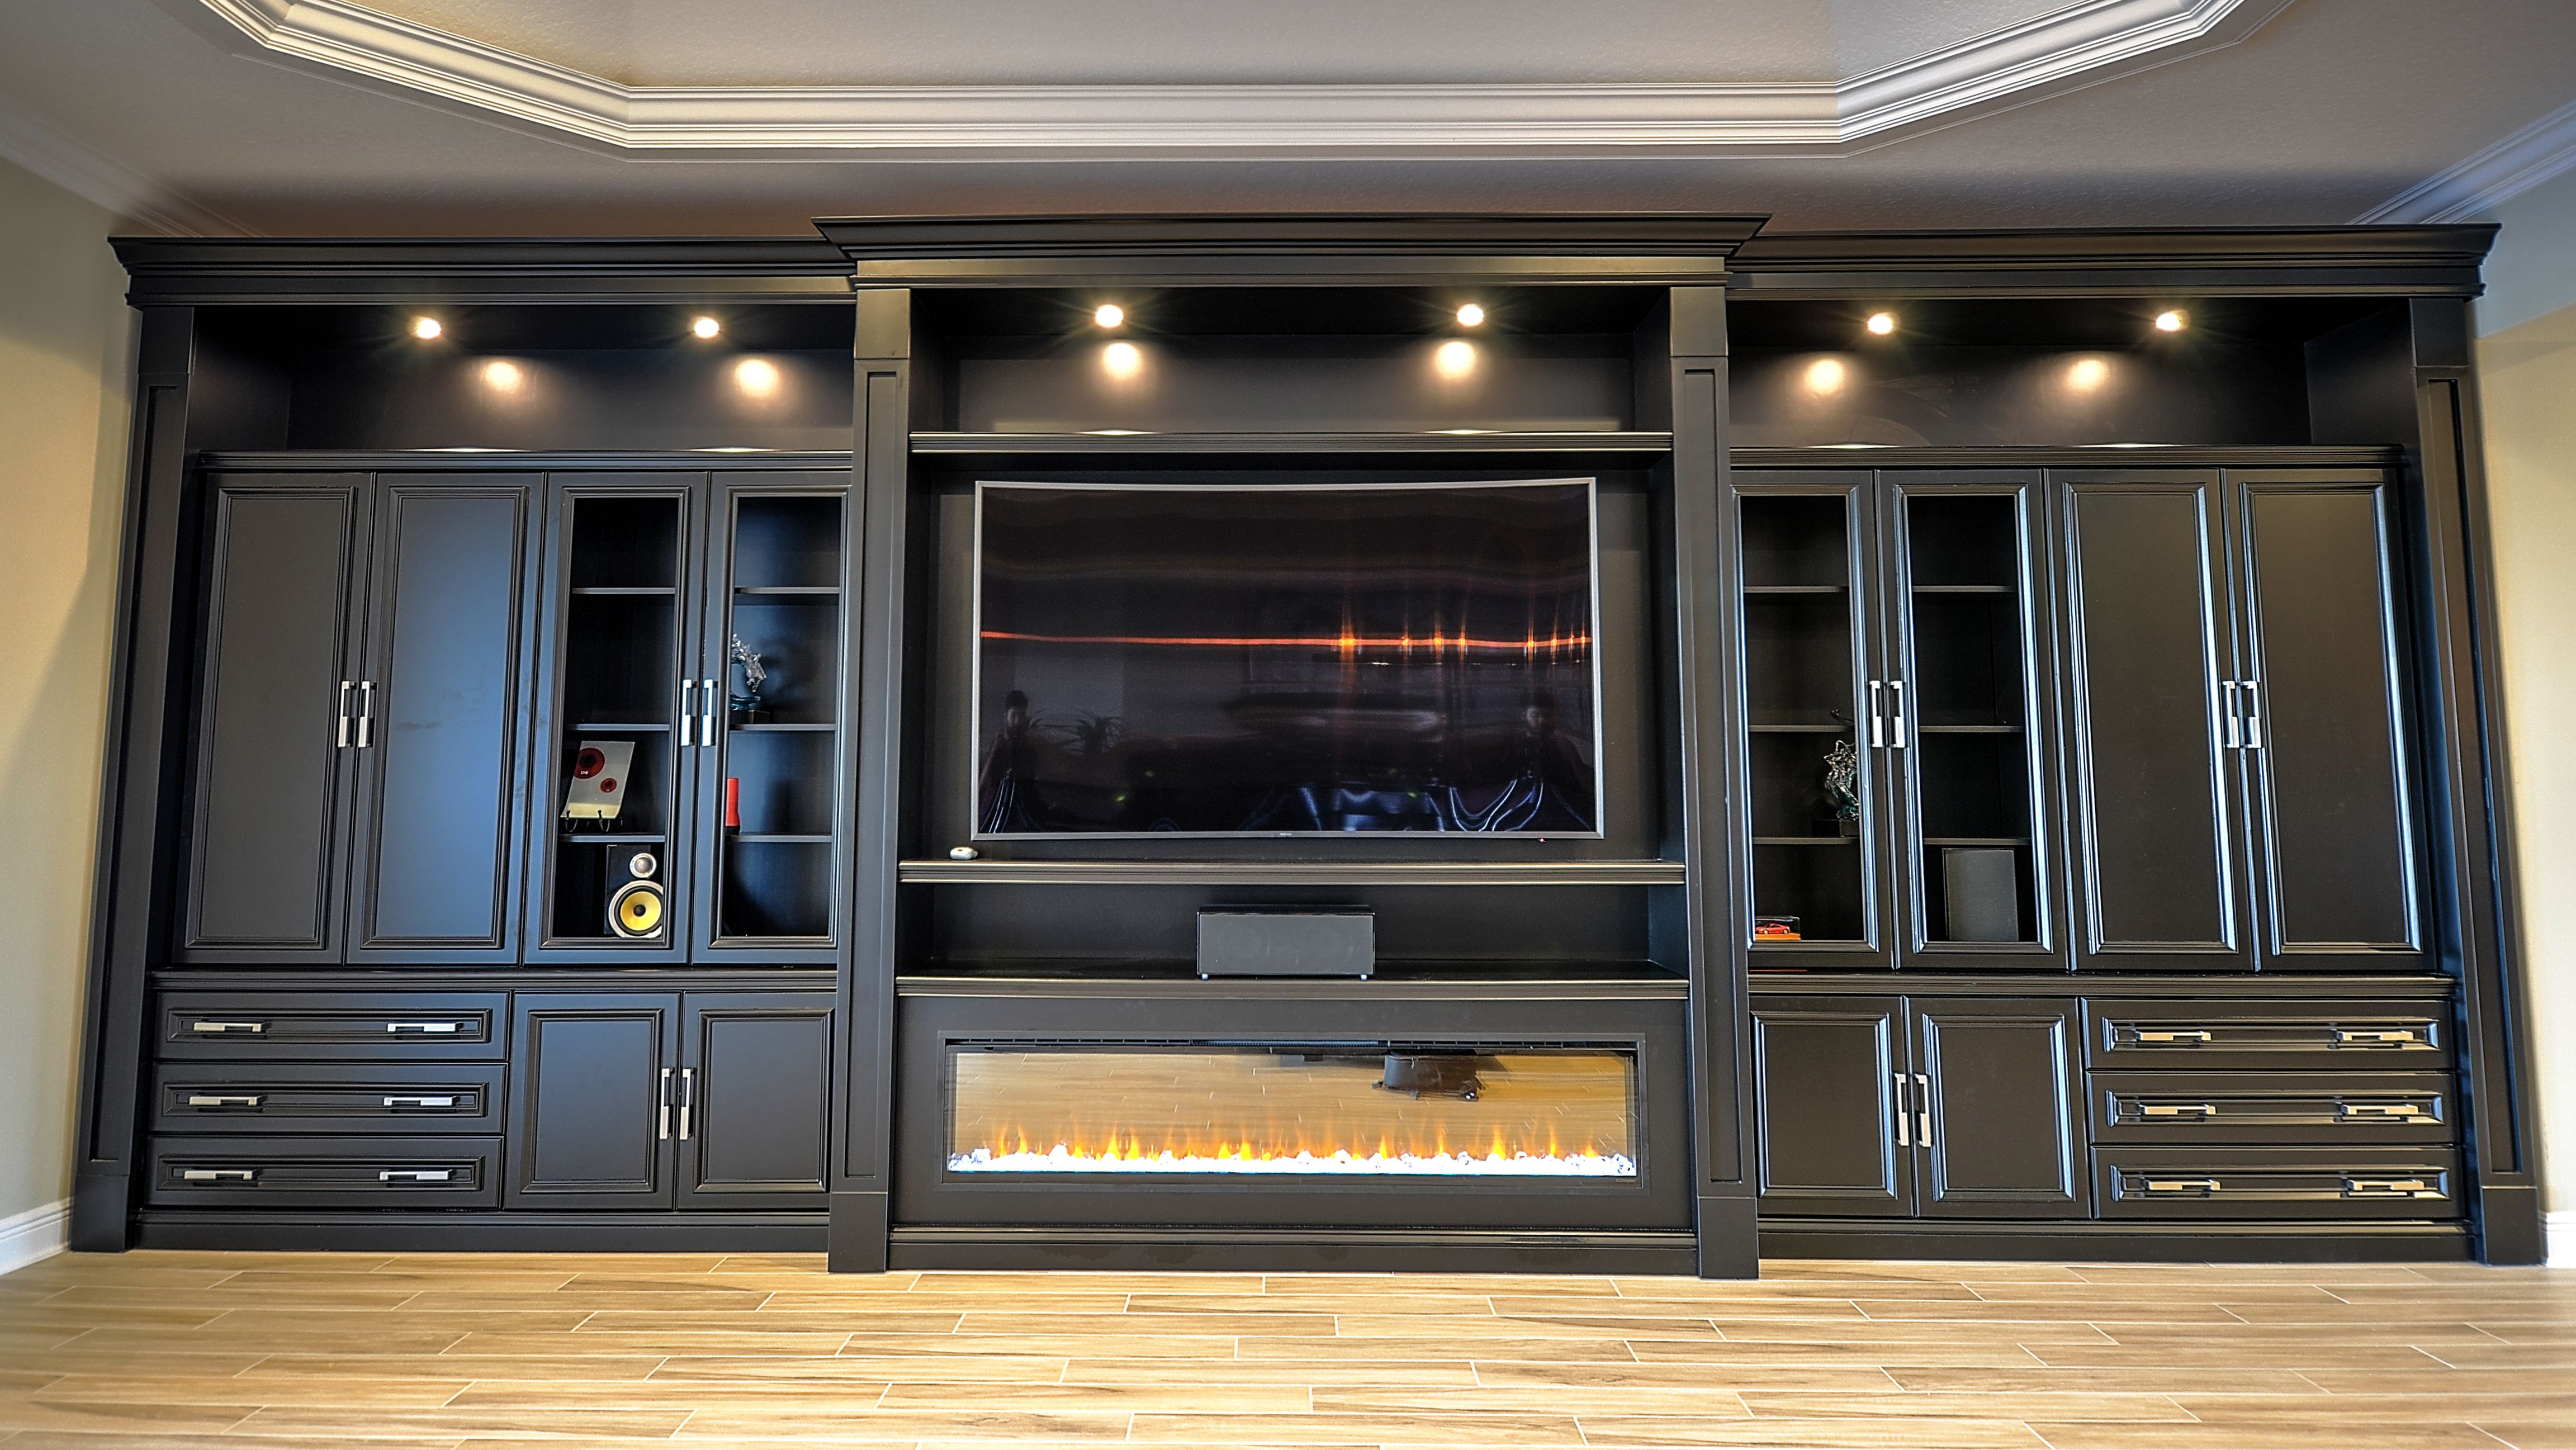 17 diy entertainment center ideas and designs for your new home 17 diy entertainment center ideas and designs for your new home custom woodworking cincinnati and woodworking malvernweather Choice Image